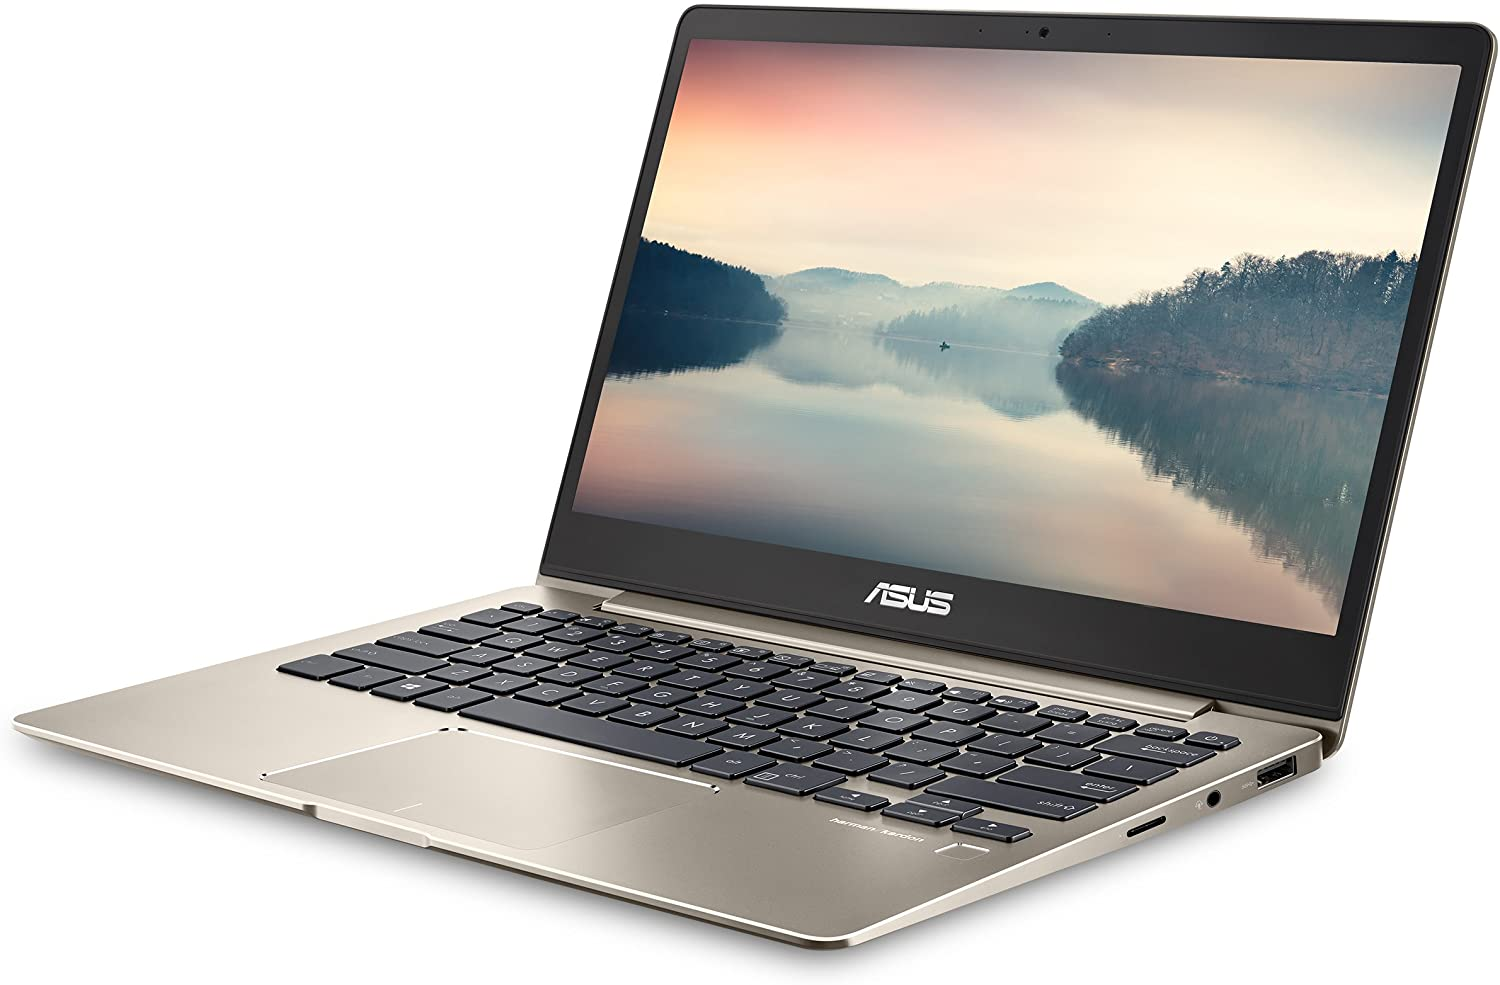 Best Laptop for Stock Charting